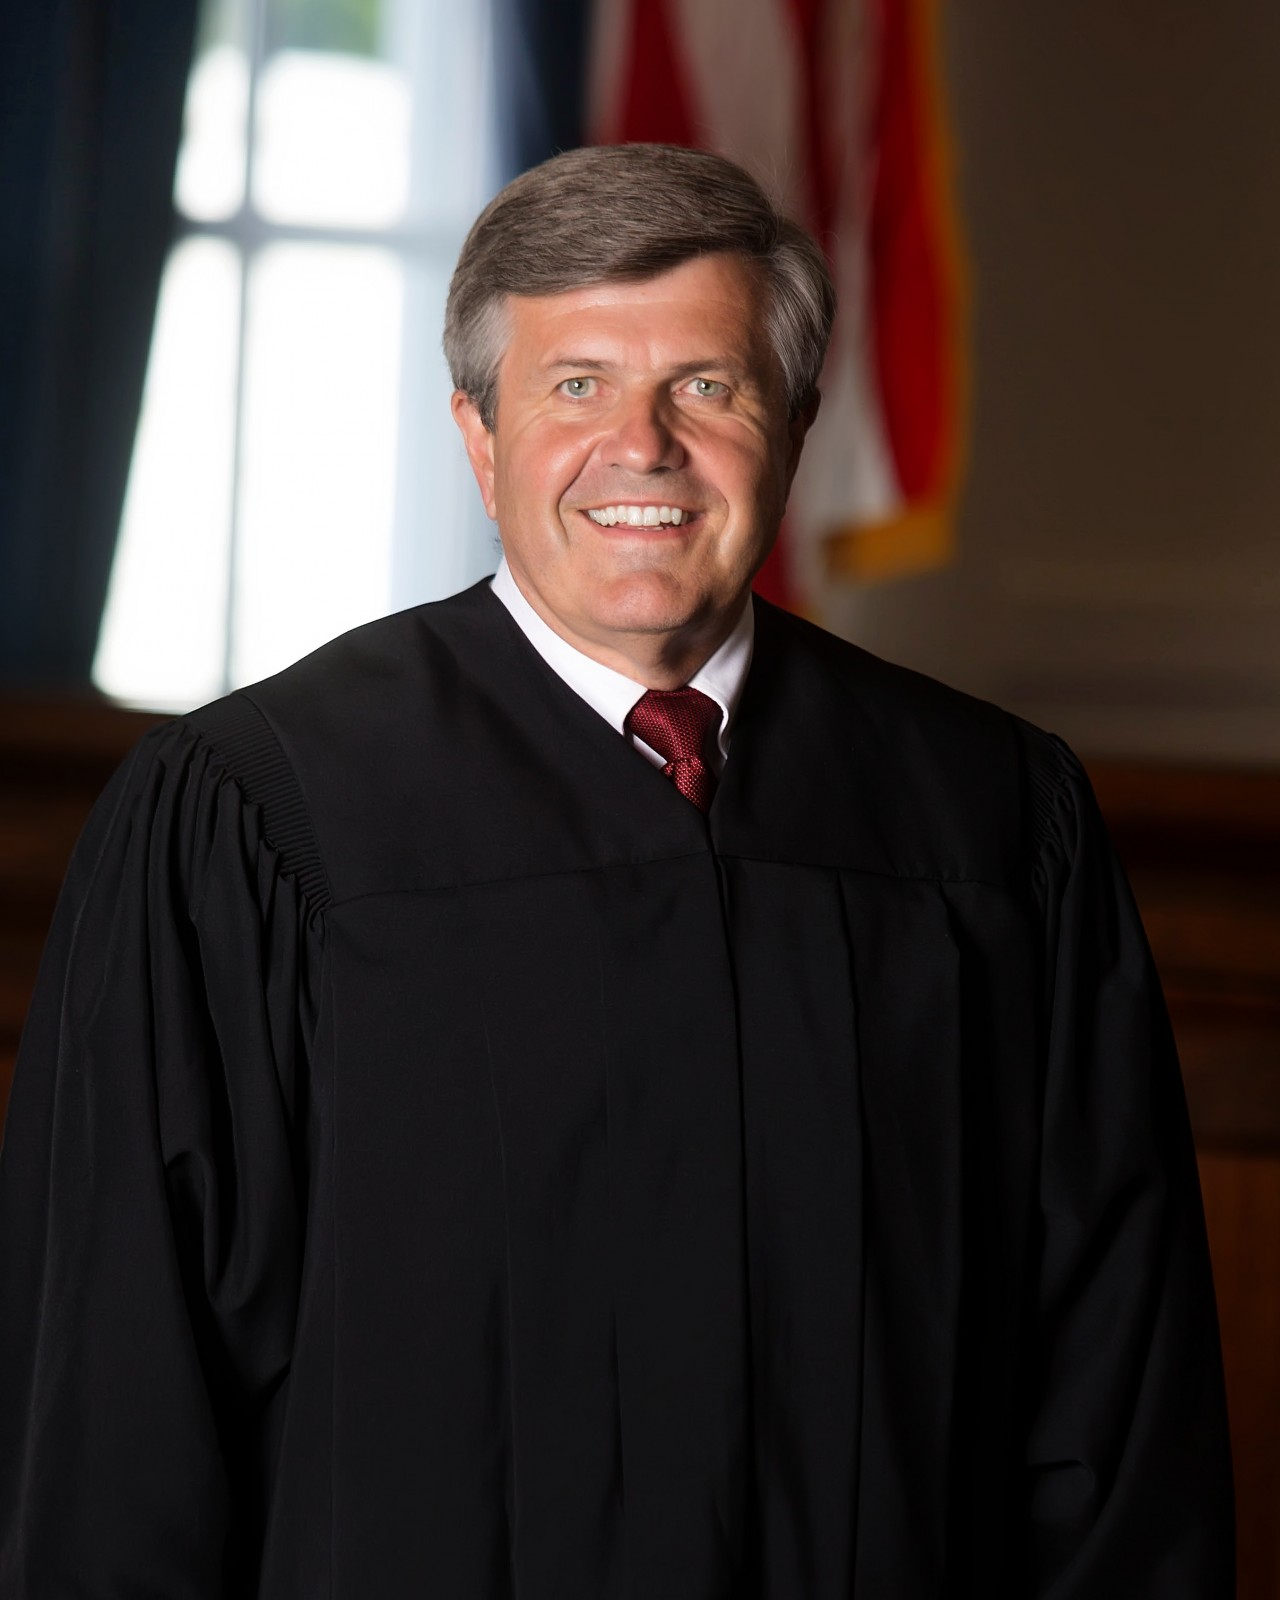 Judge Schwarm named presiding judge of fifth district